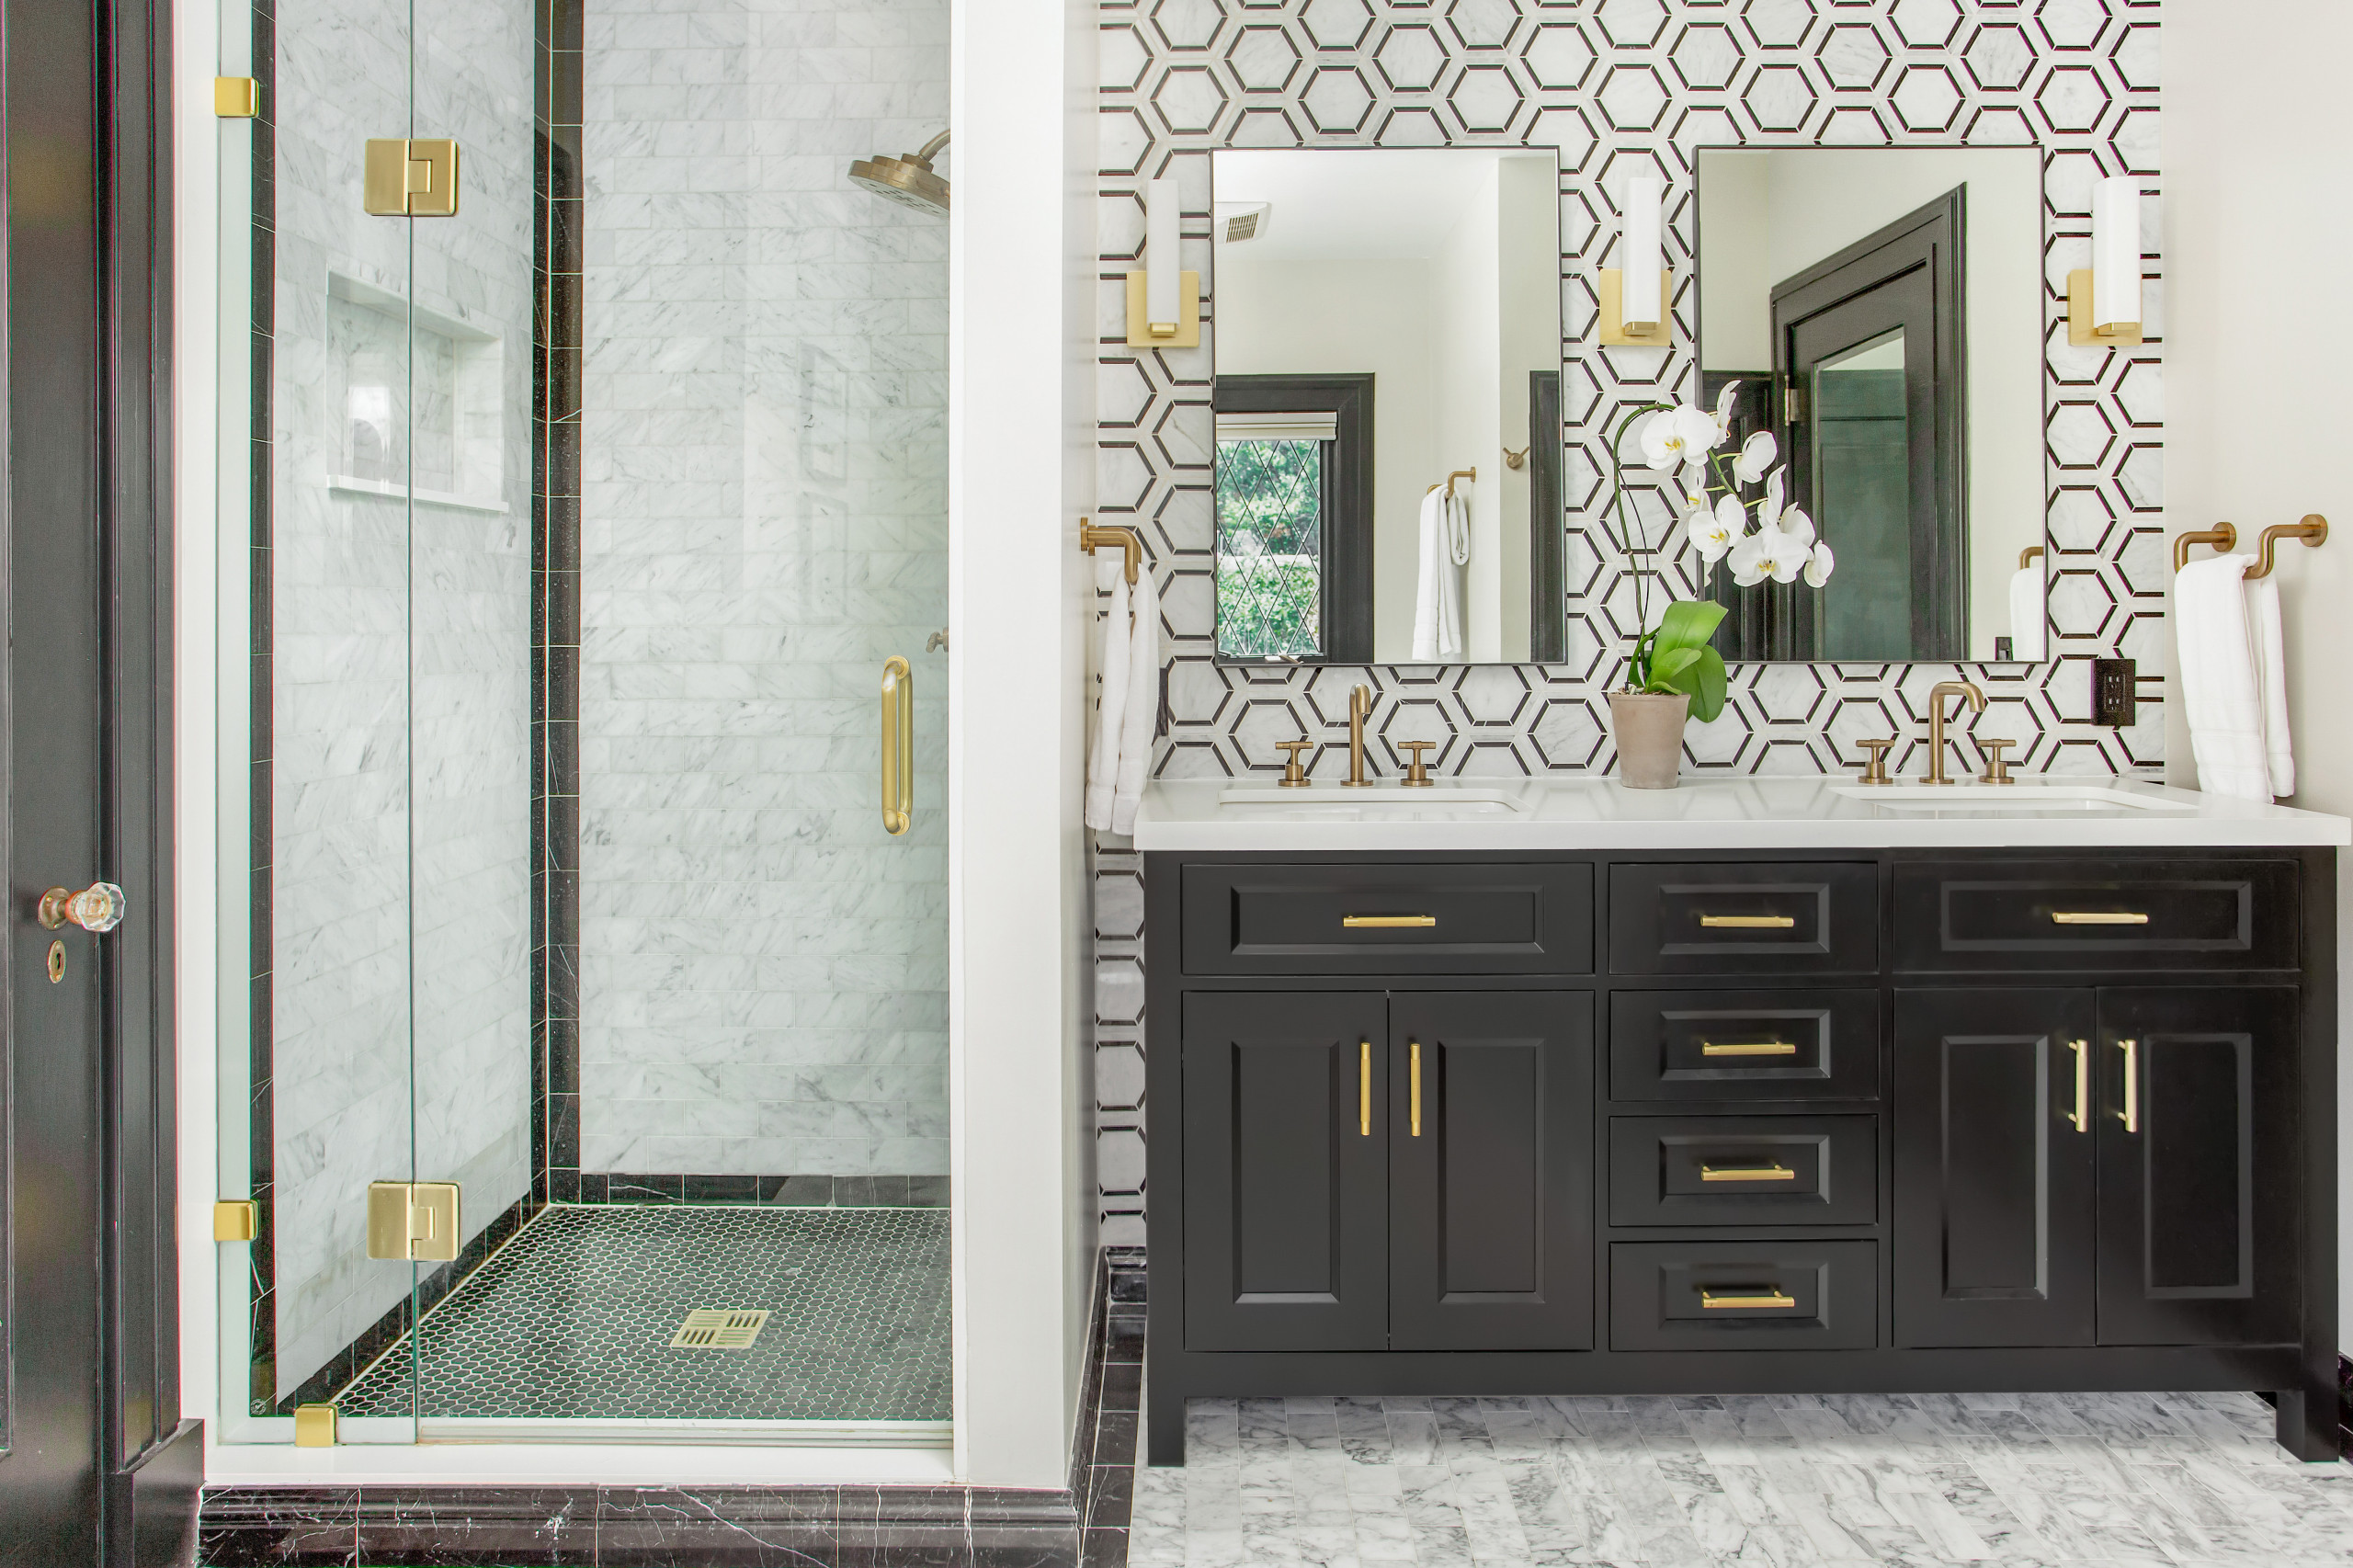 75 Beautiful Black And White Tile Bathroom Pictures Ideas November 2020 Houzz